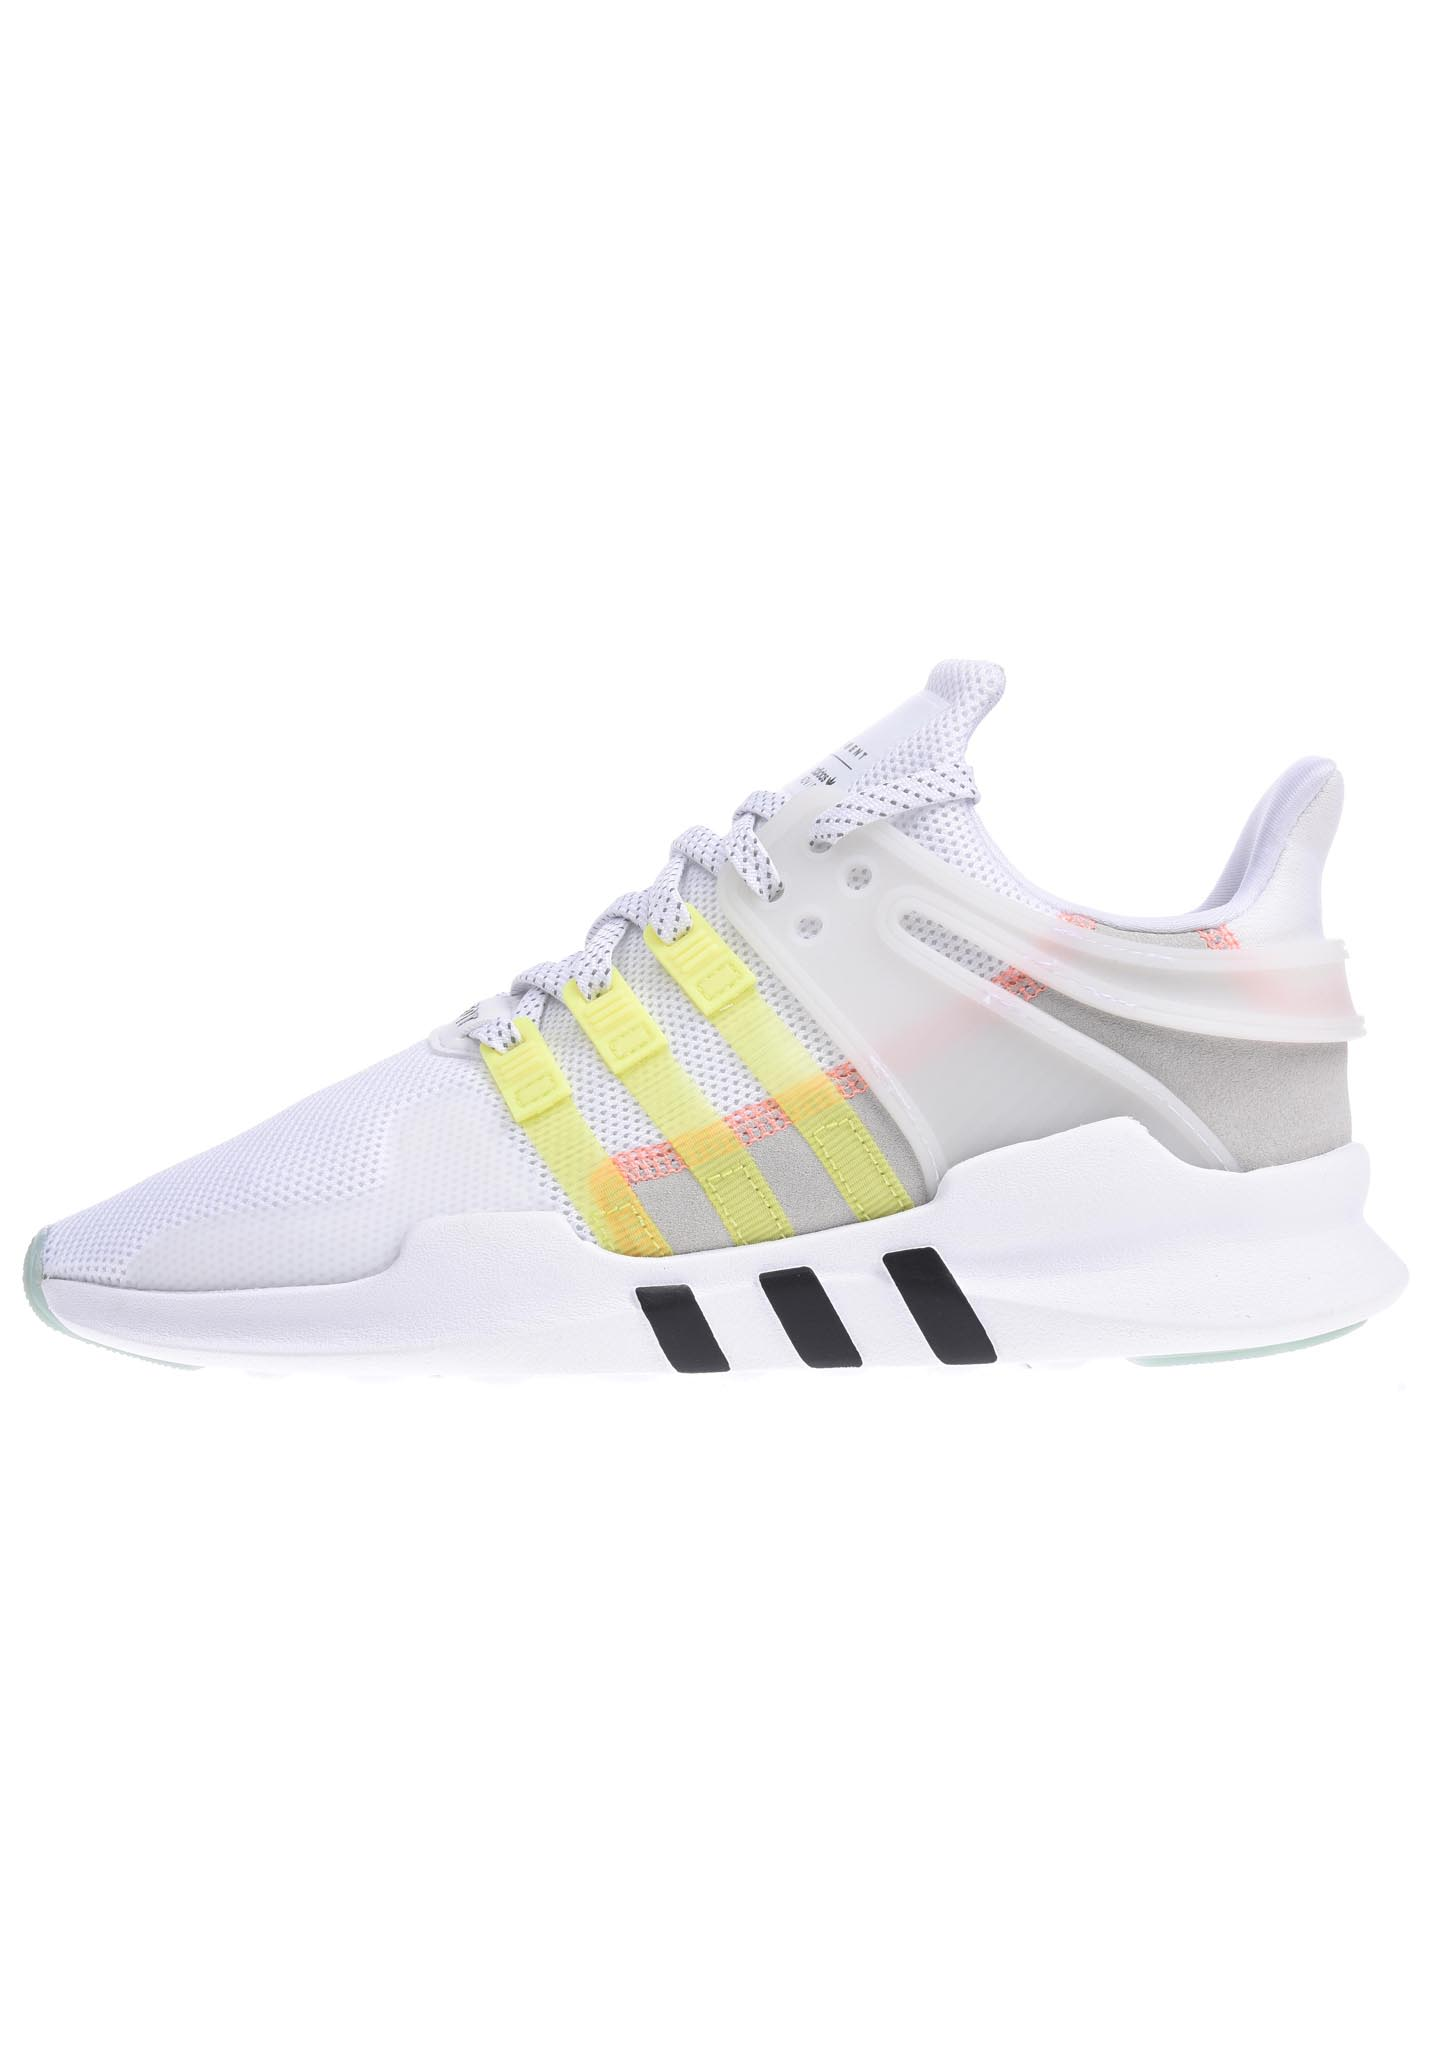 outlet store 62fc4 47657 ADIDAS ORIGINALS Eqt Support Adv - Zapatillas para Mujeres - Blanco -  Planet Sports